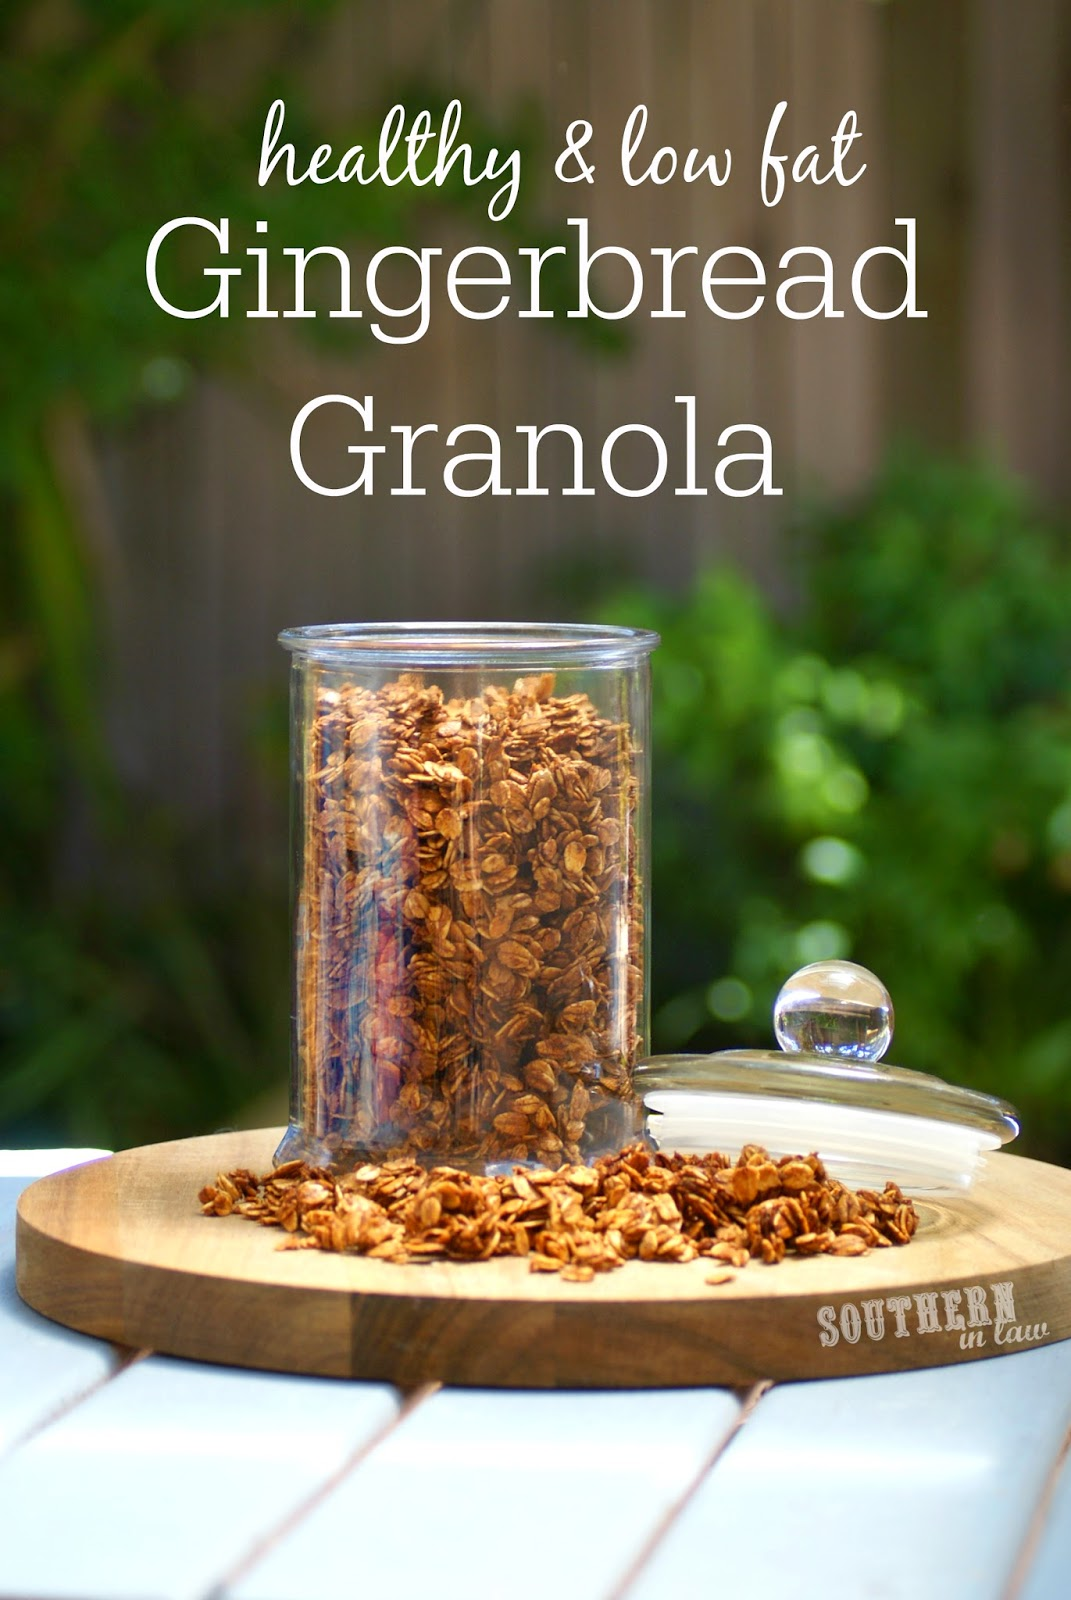 Gluten Free Gingerbread Granola Recipe - low fat, gluten free, healthy, clean eating friendly, christmas gift ideas